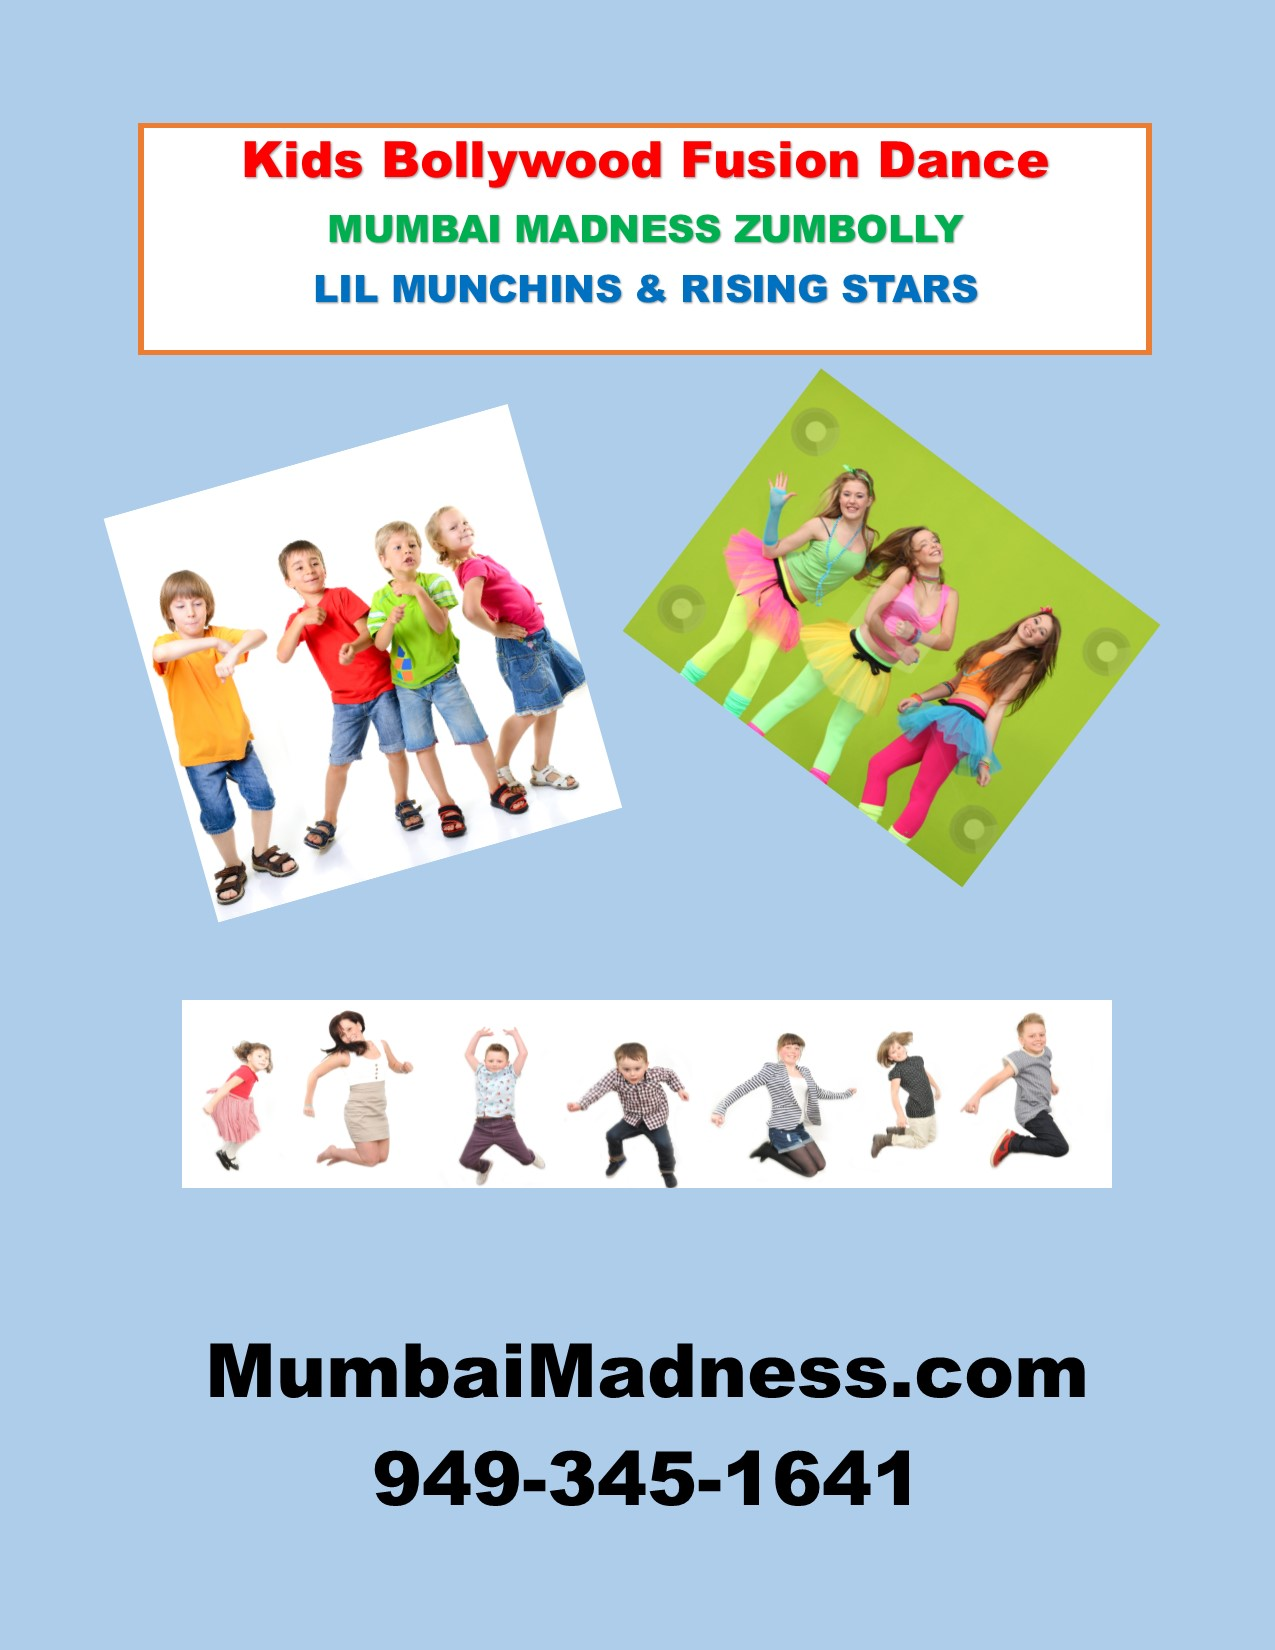 Mumbai Madness ZumBolly Bollywood Dance Fusion Kids Class Flyer